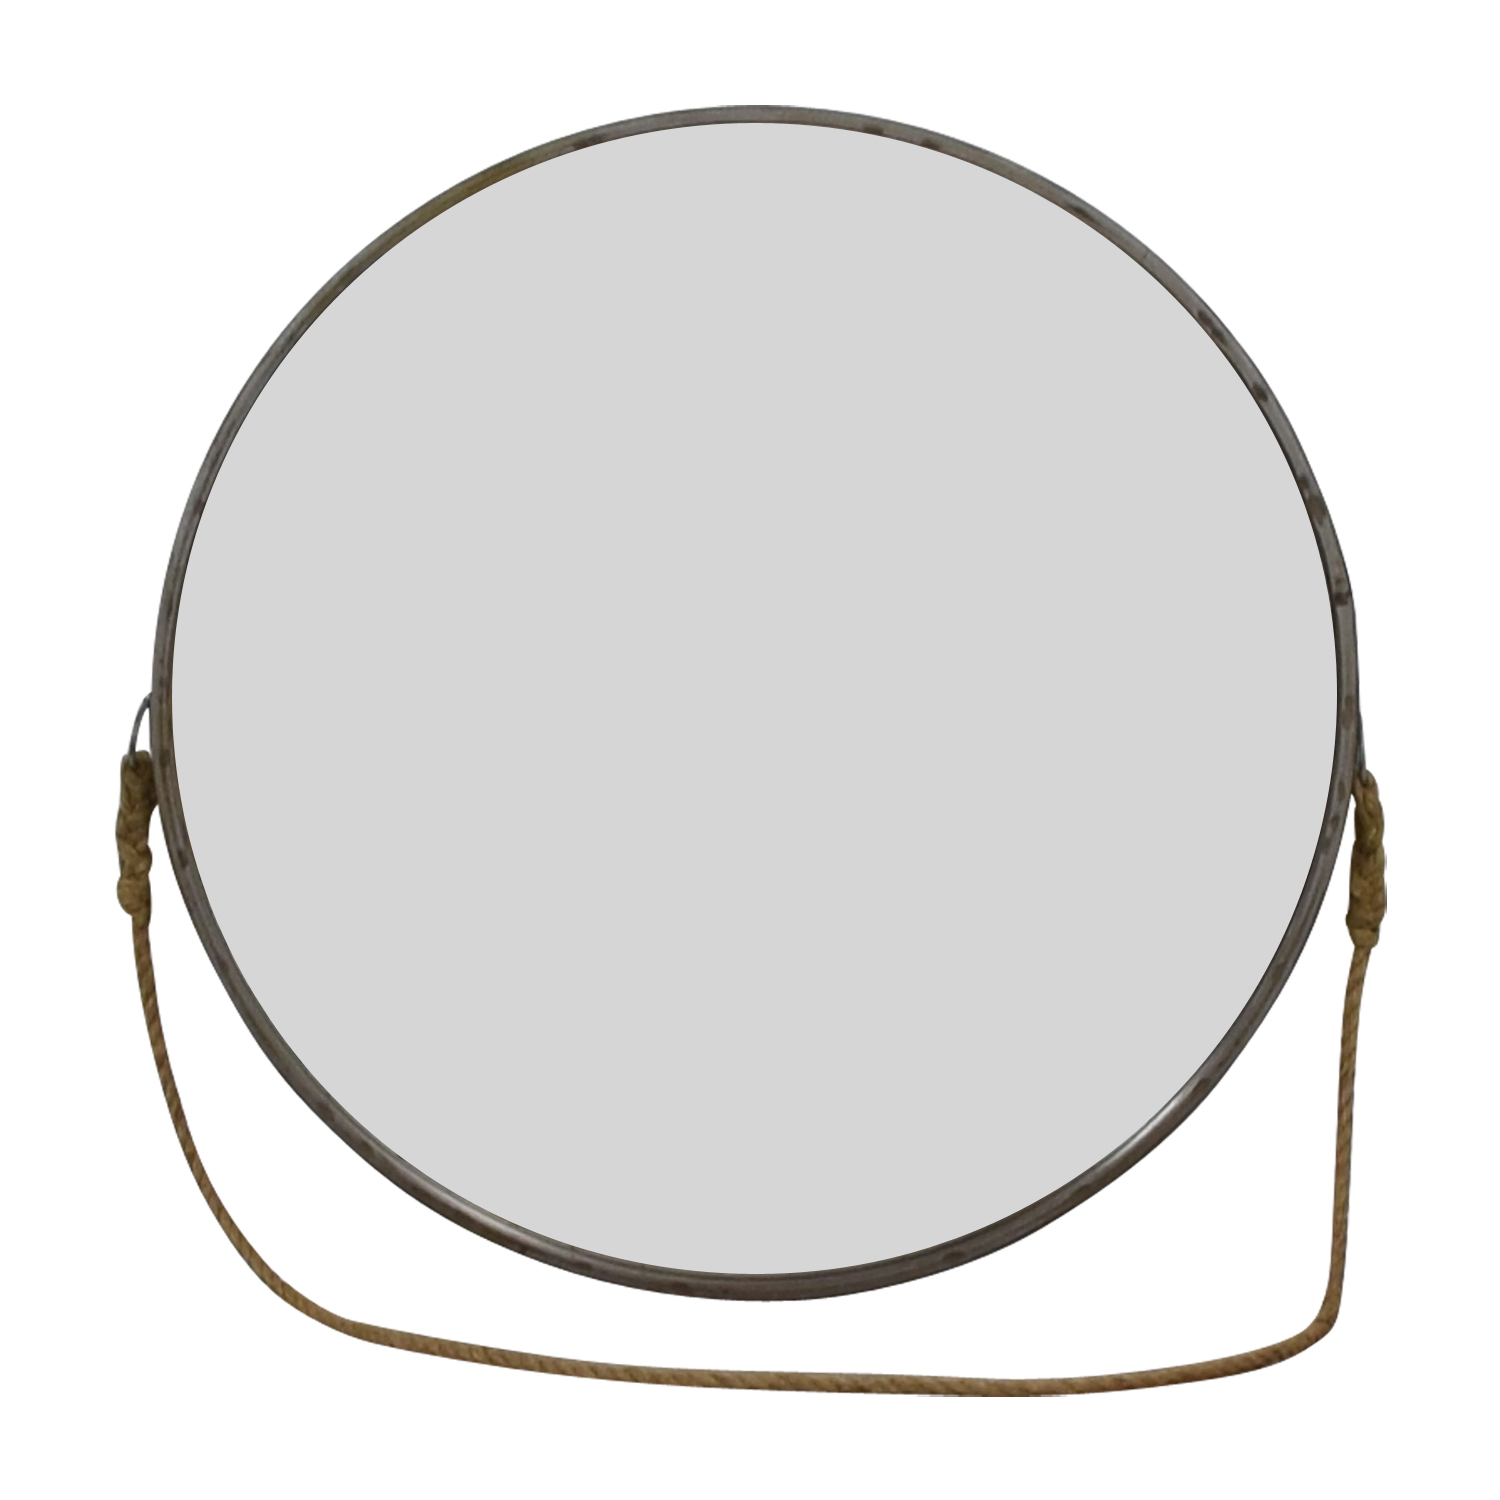 buy Bed Bath & Beyond Round Hanging Mirror Bed Bath & Beyond Decor